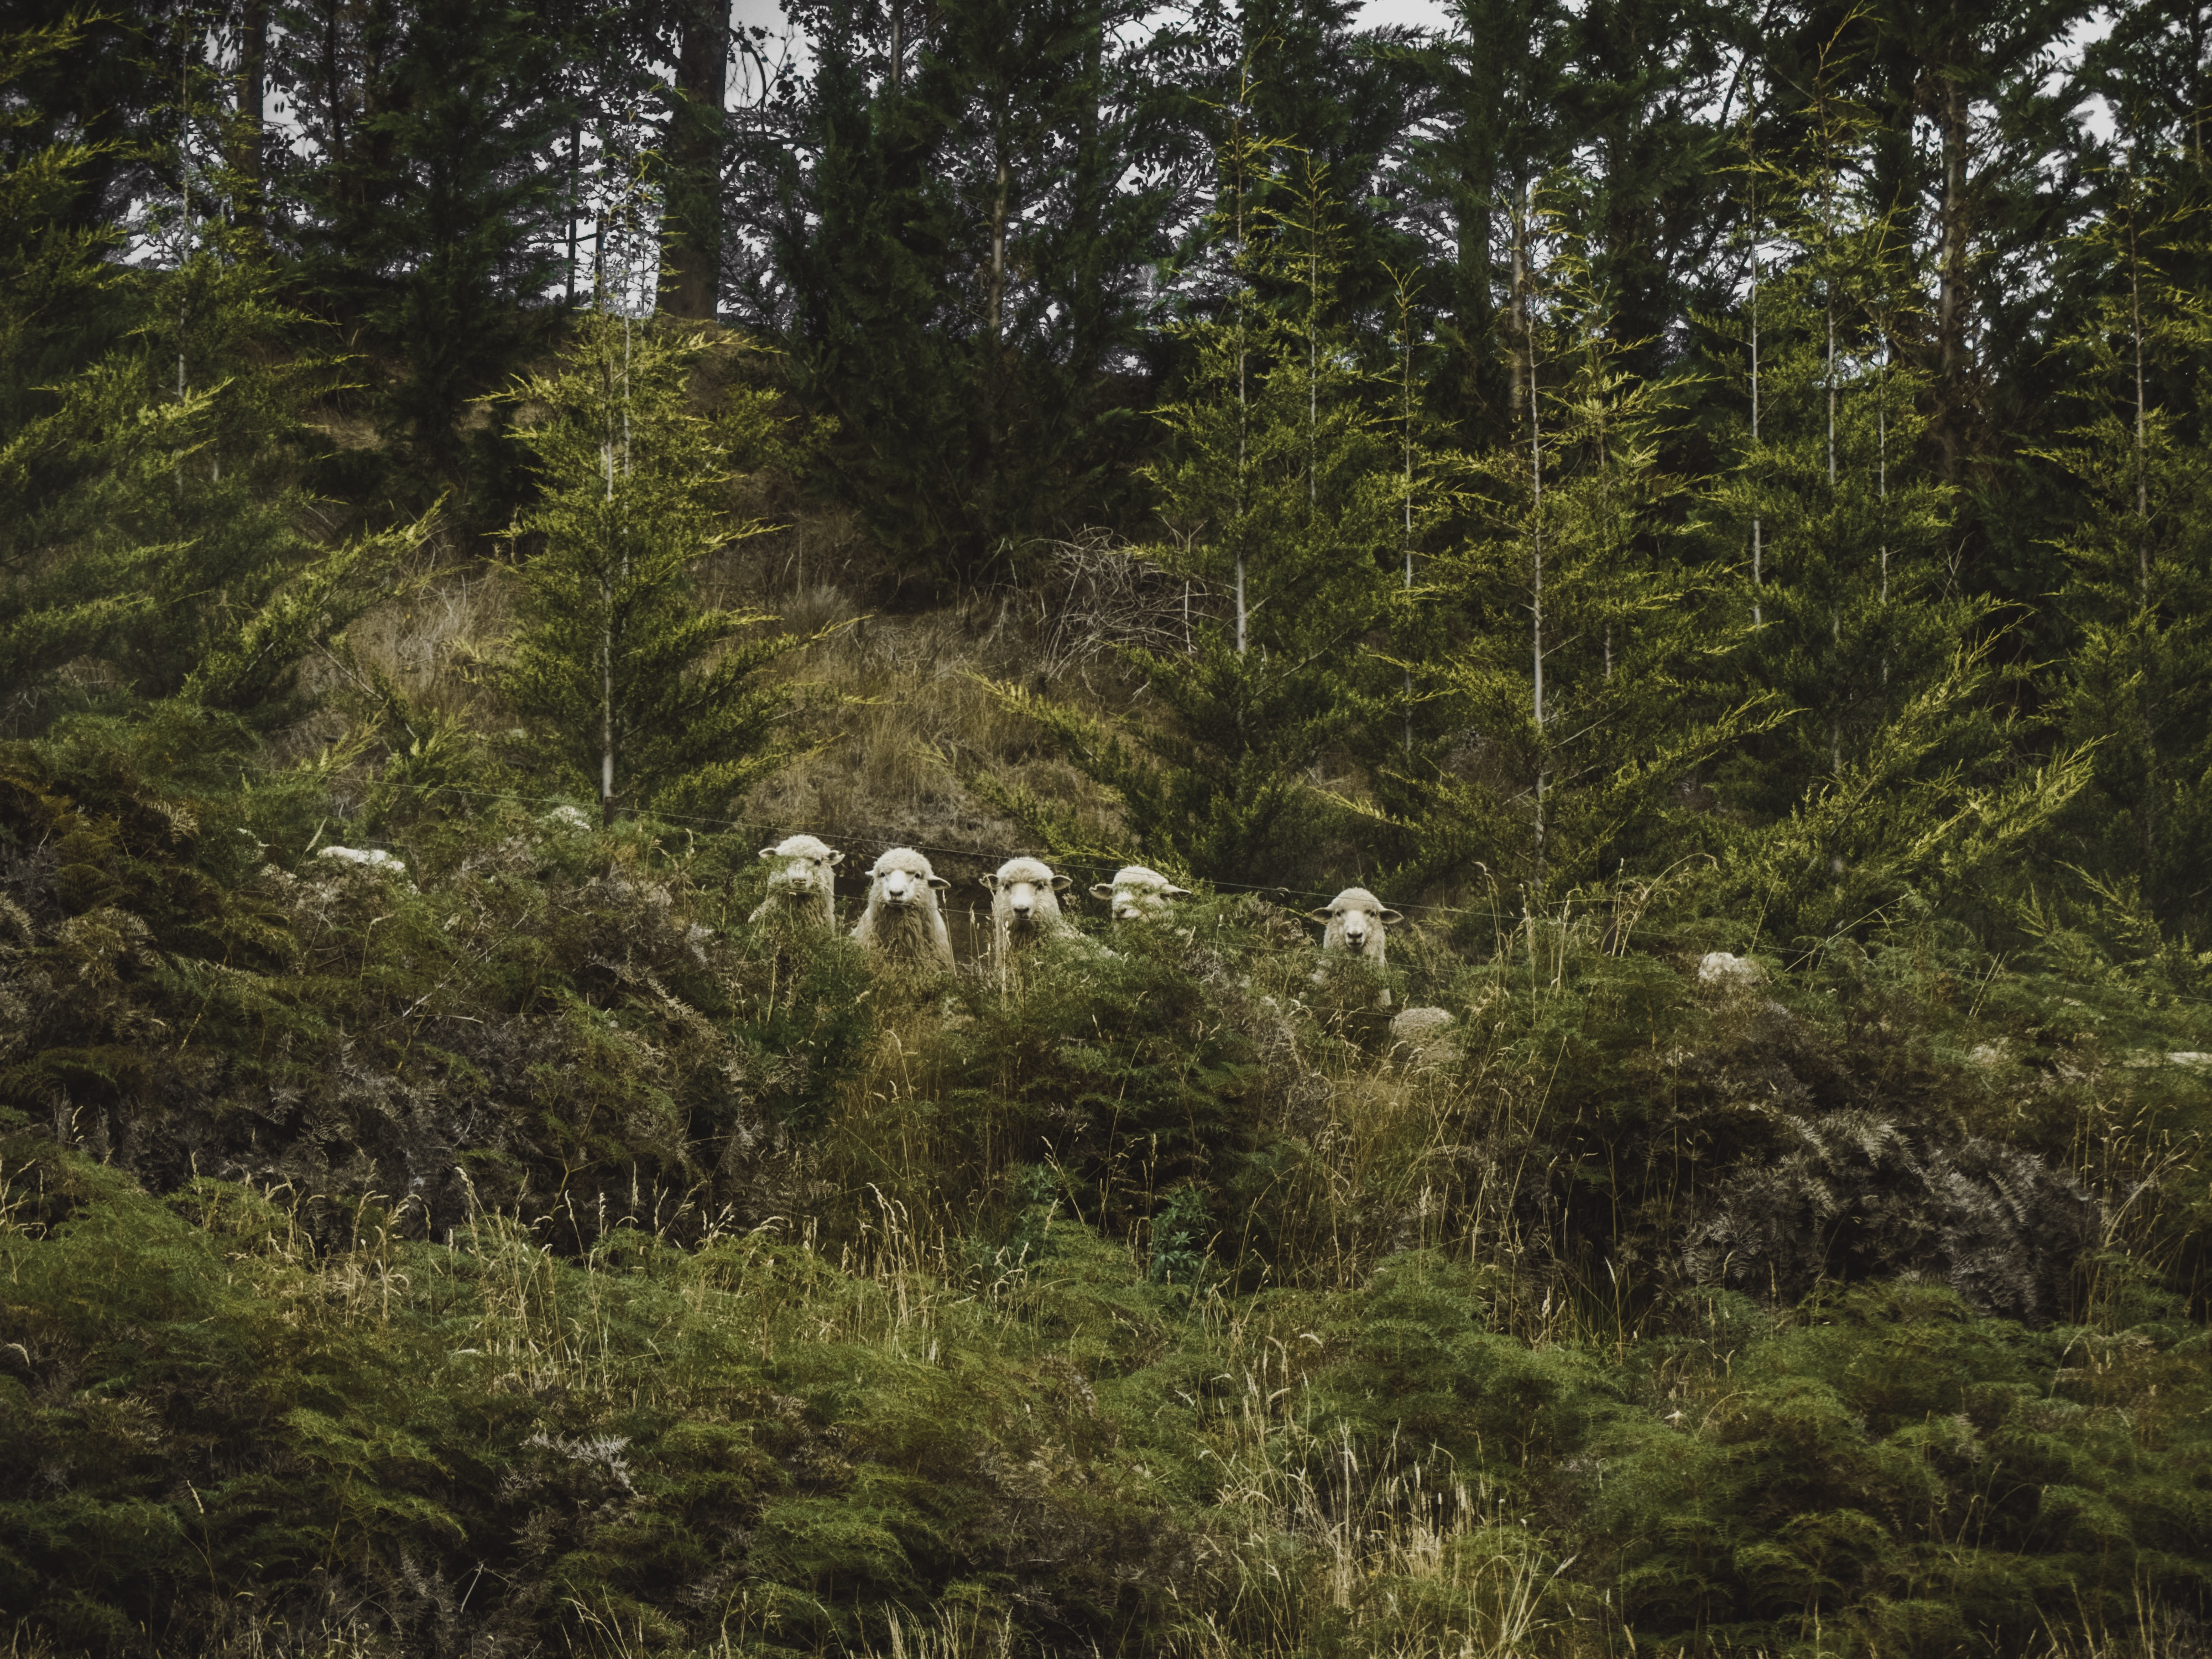 A herd of sheep standing in a row behind green bushes